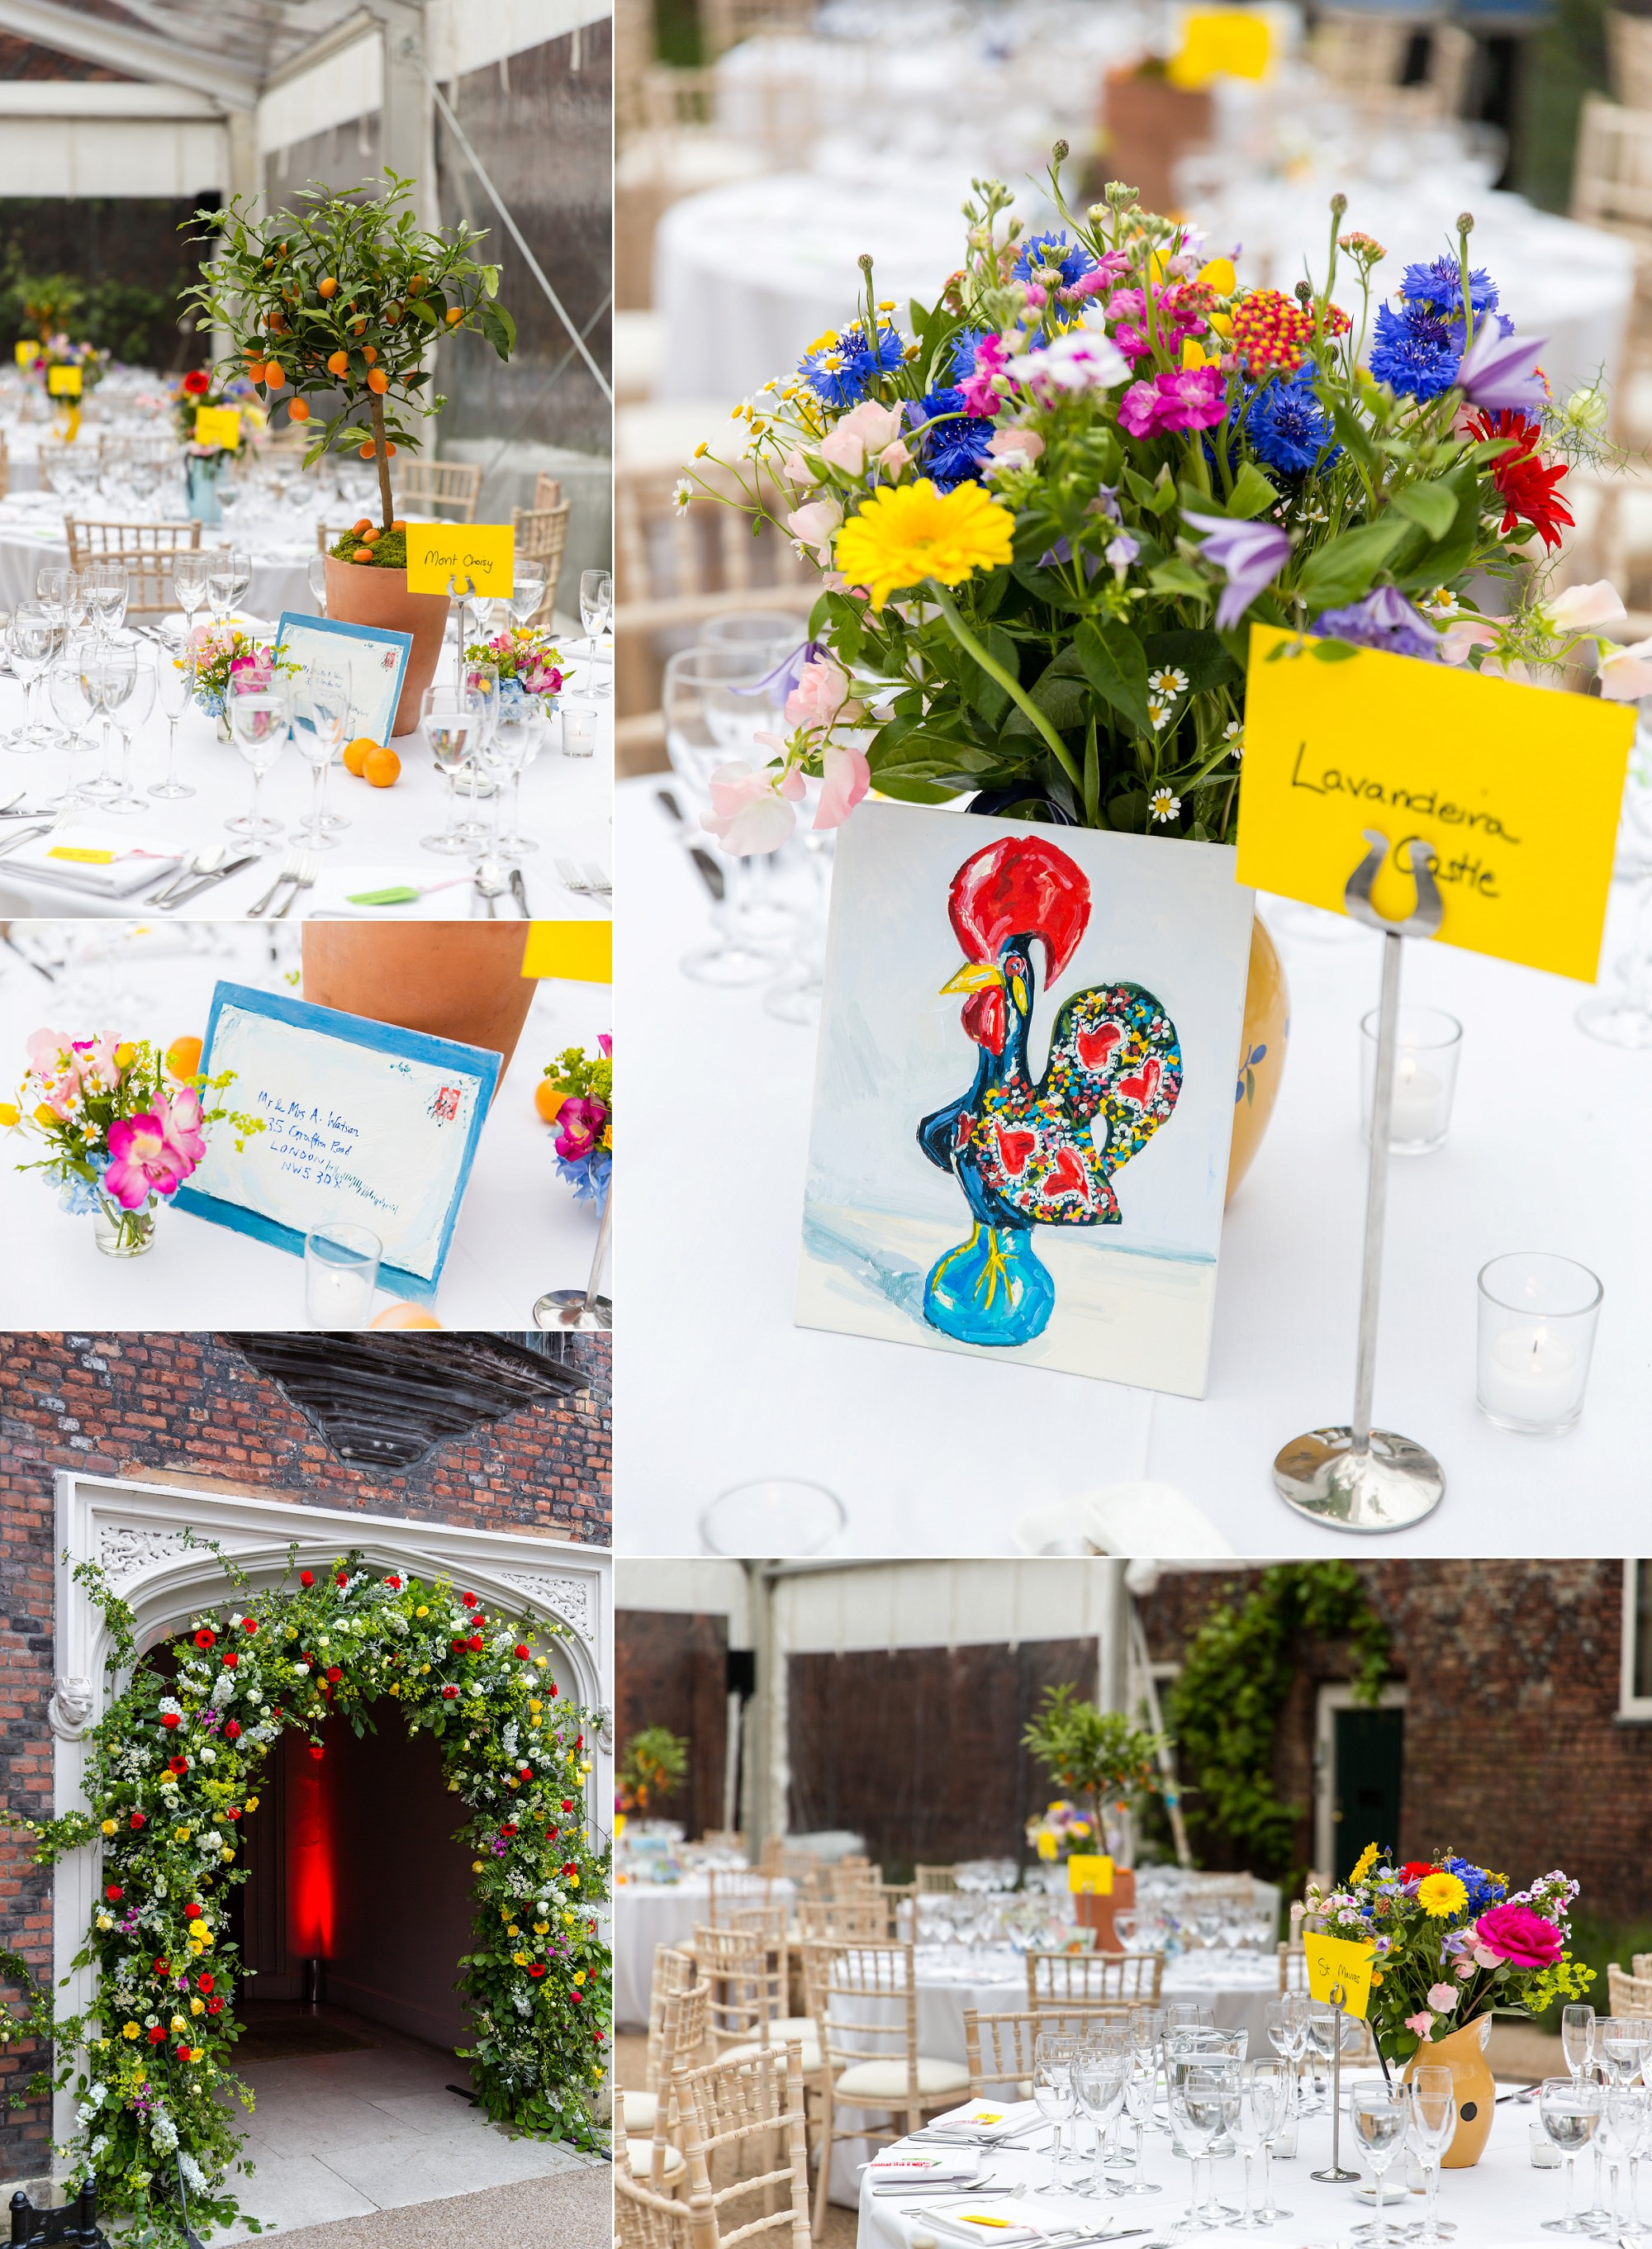 Fulham Palace Wedding tables